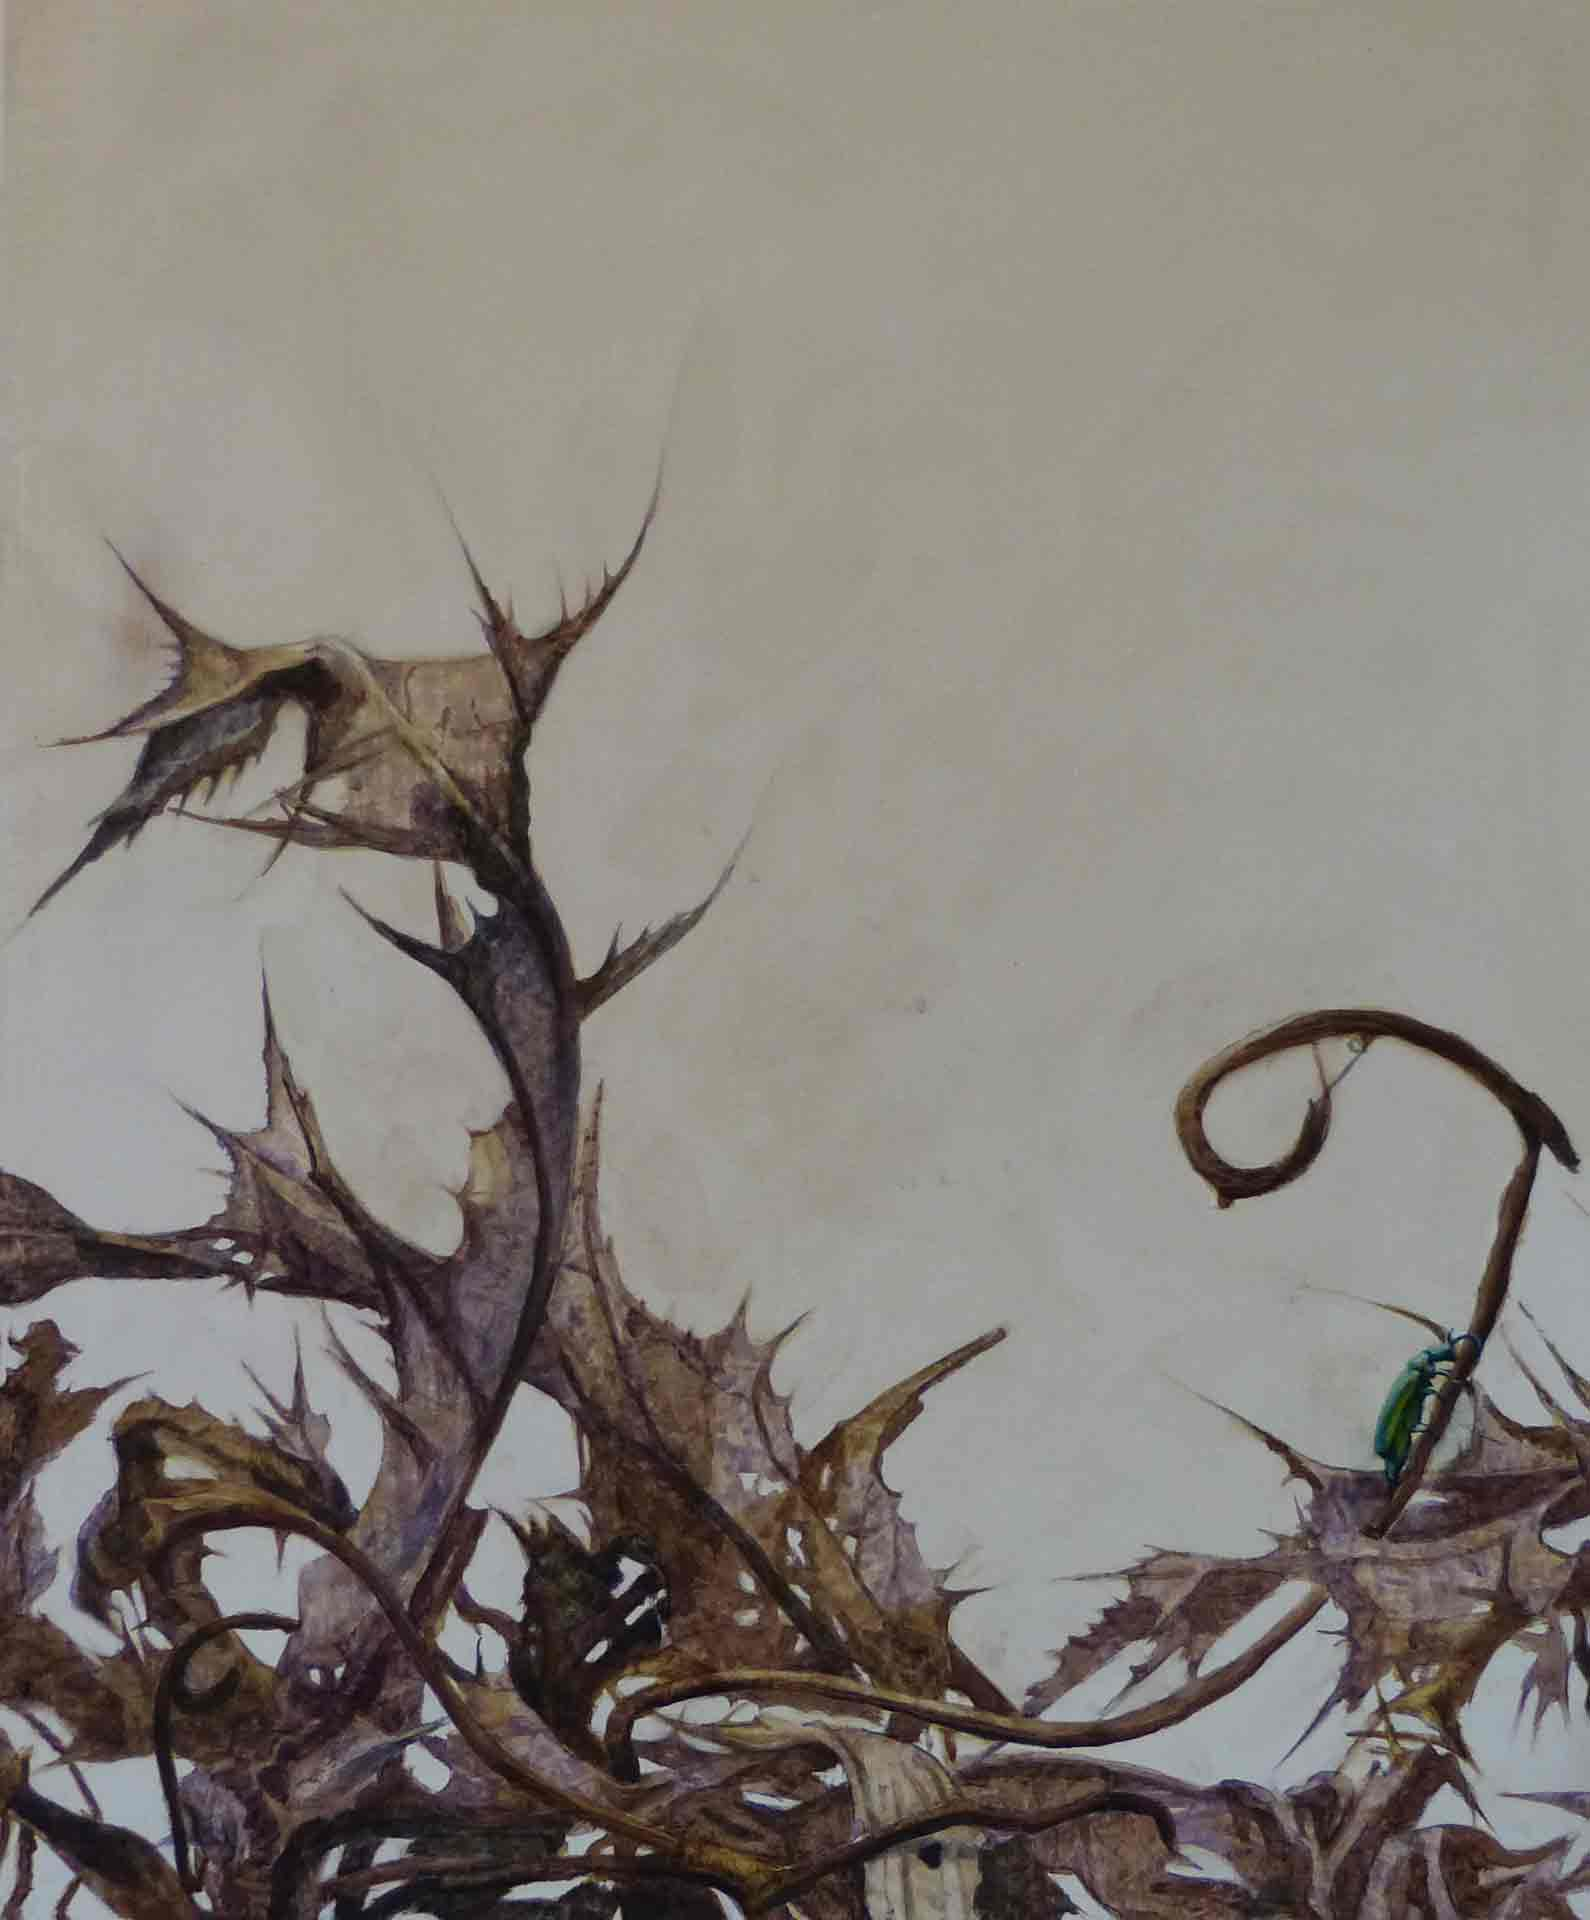 Nest of Thistles. 38 x 46 cm. Oil on gesso board. SOLD